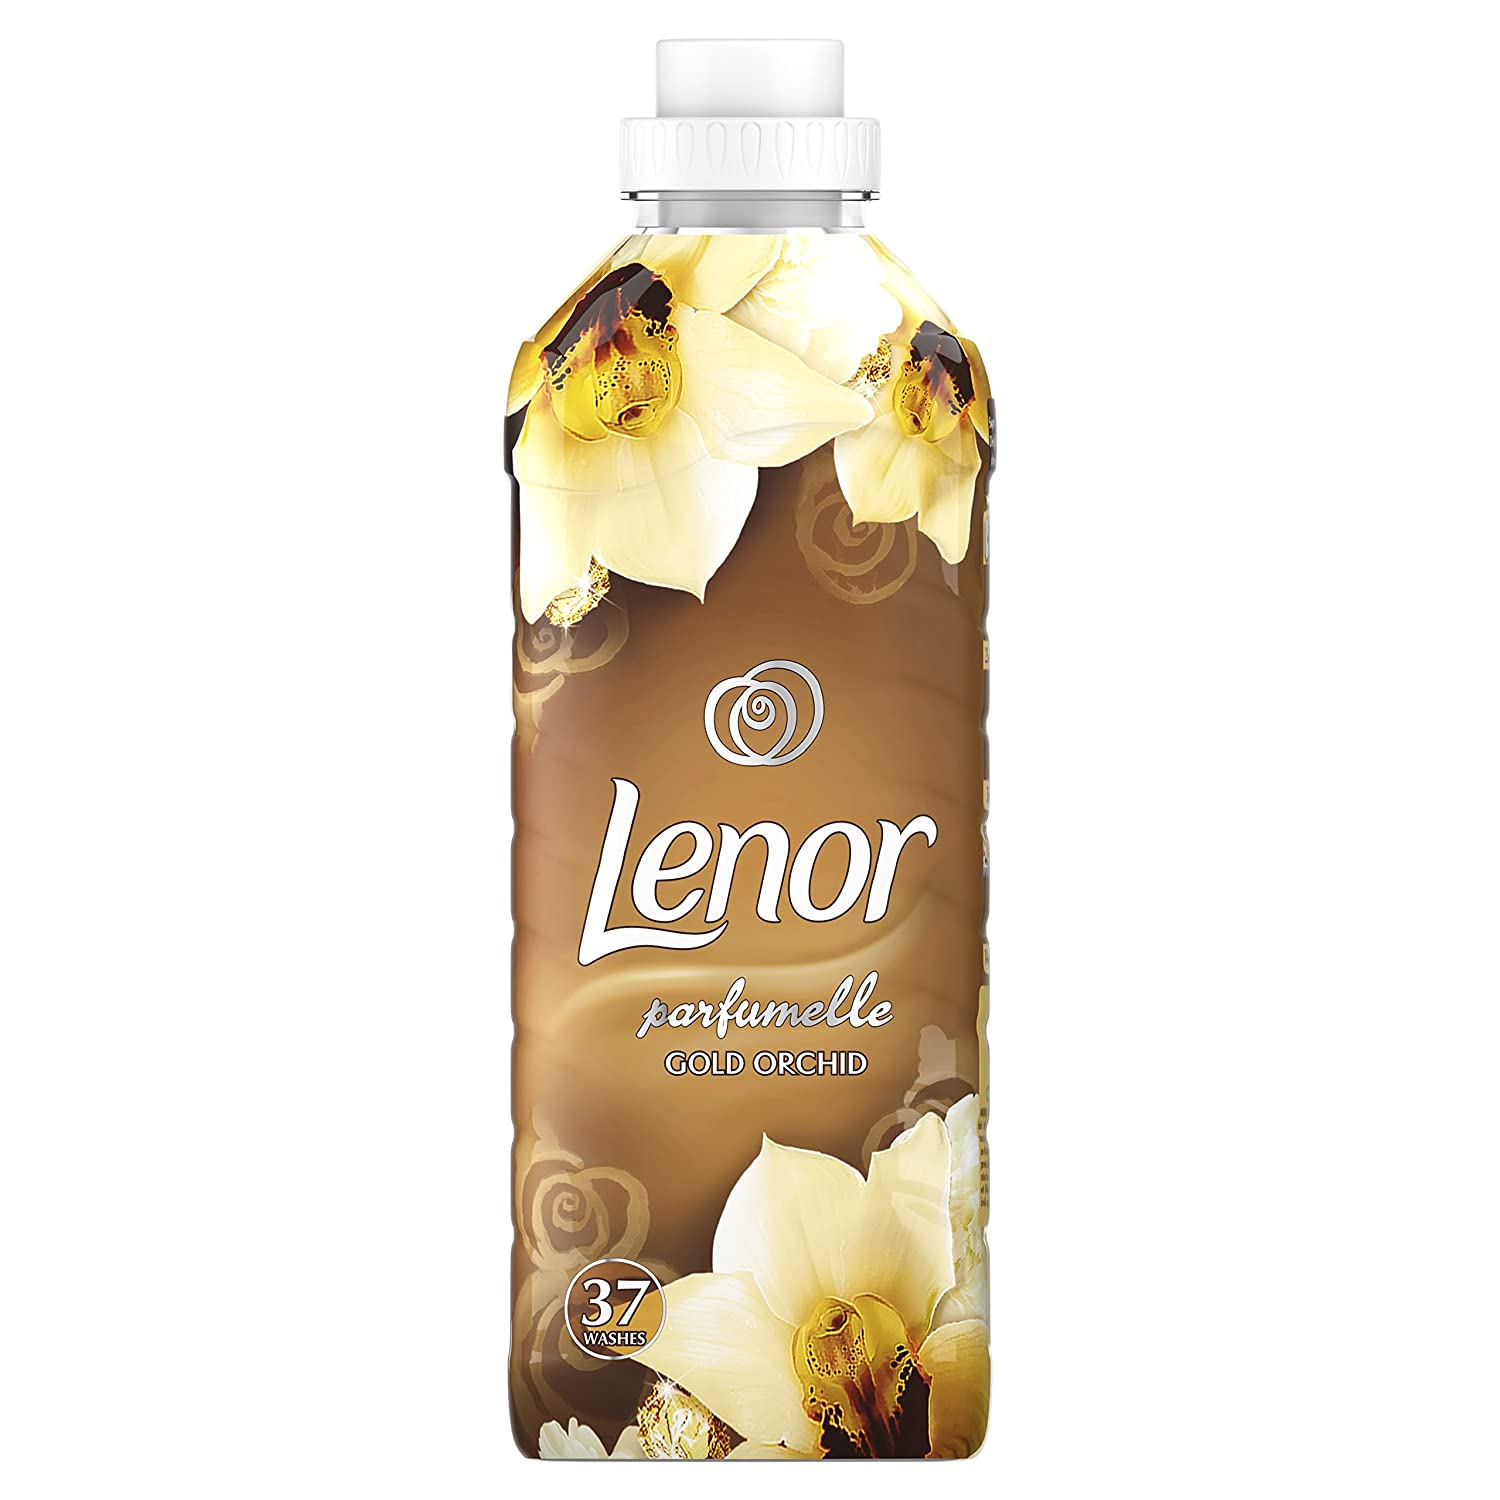 Lenor Fabric Conditioner Gold Orchid Scent, Anti-Ageing for Soft Clothes and Comfortable Feel, 925ml, 37 Washes Procter & Gamble 106648075